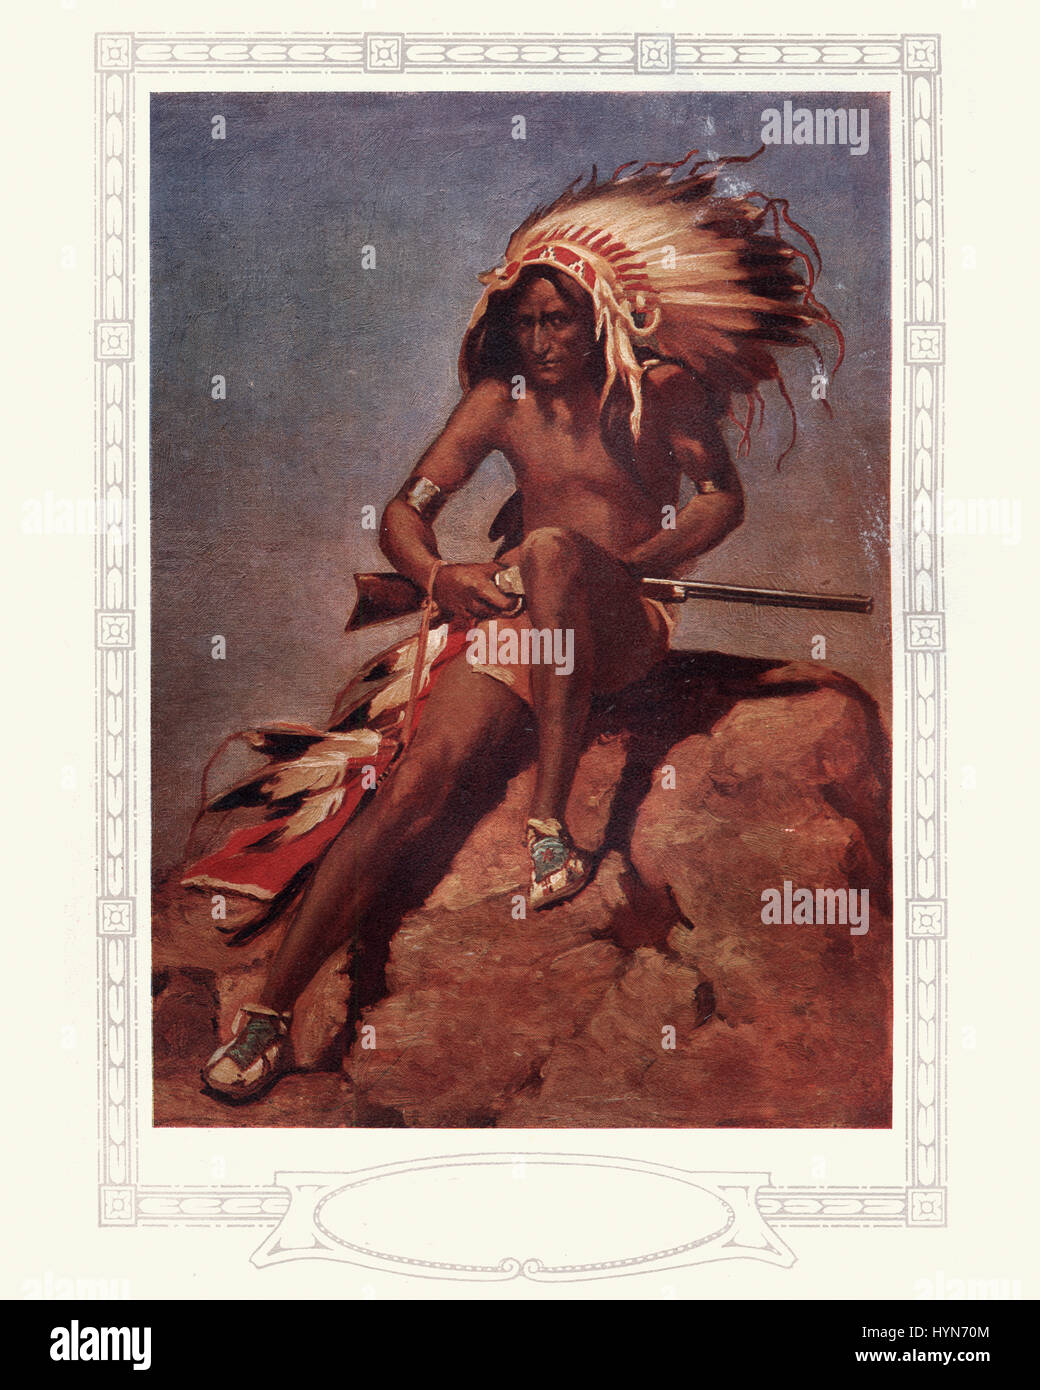 Vintage engraving of a Native American Warrior with Rifle, 1913 - Stock Image